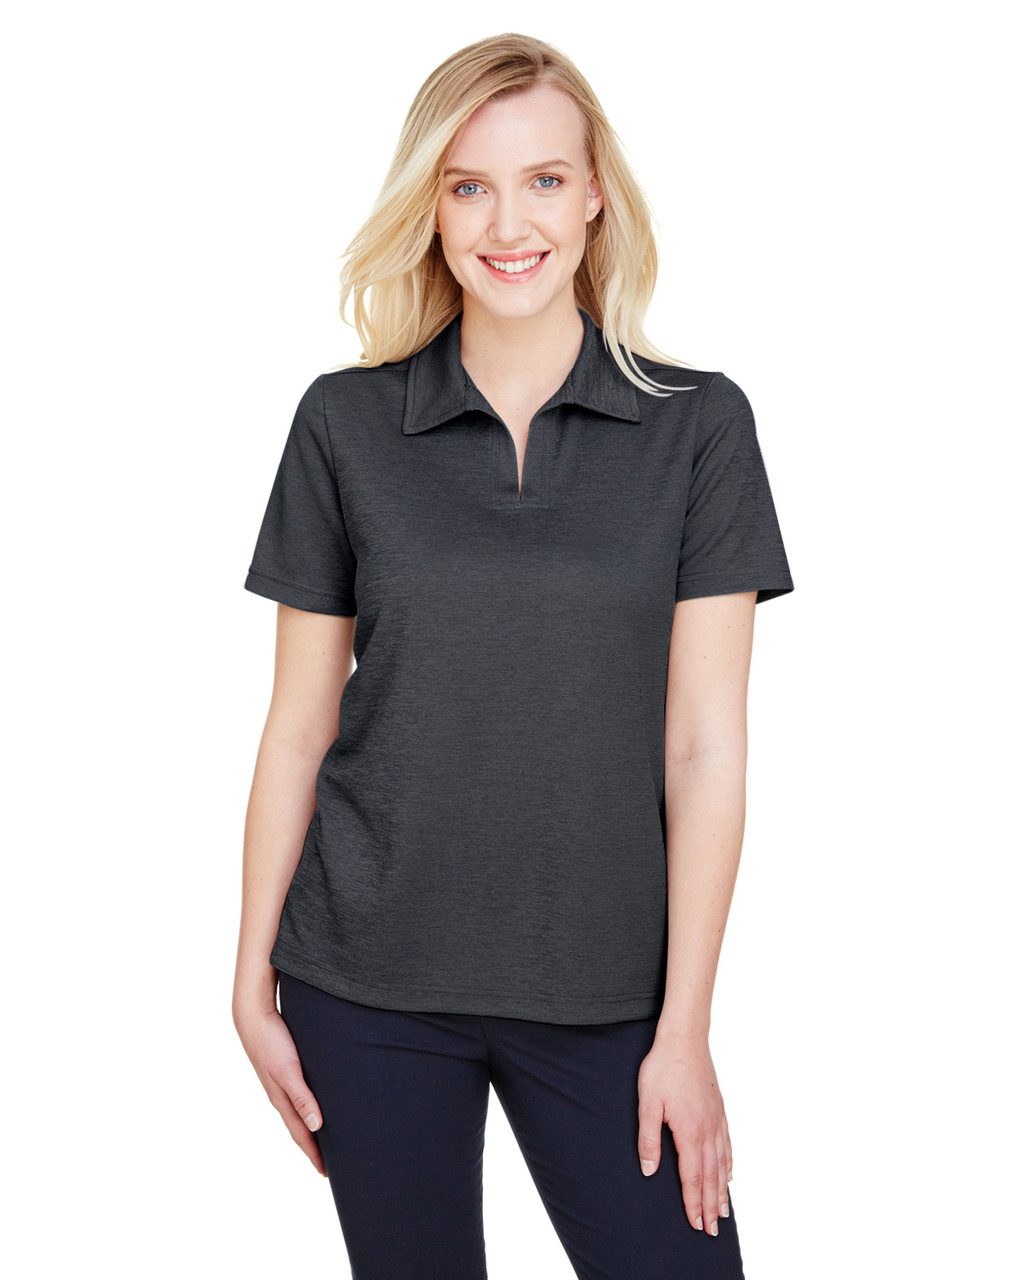 Black Heather - DG22W Devon & Jones Ladies' CrownLux Performance™ Address Mélange Polo Shirt | BlankClothing.ca